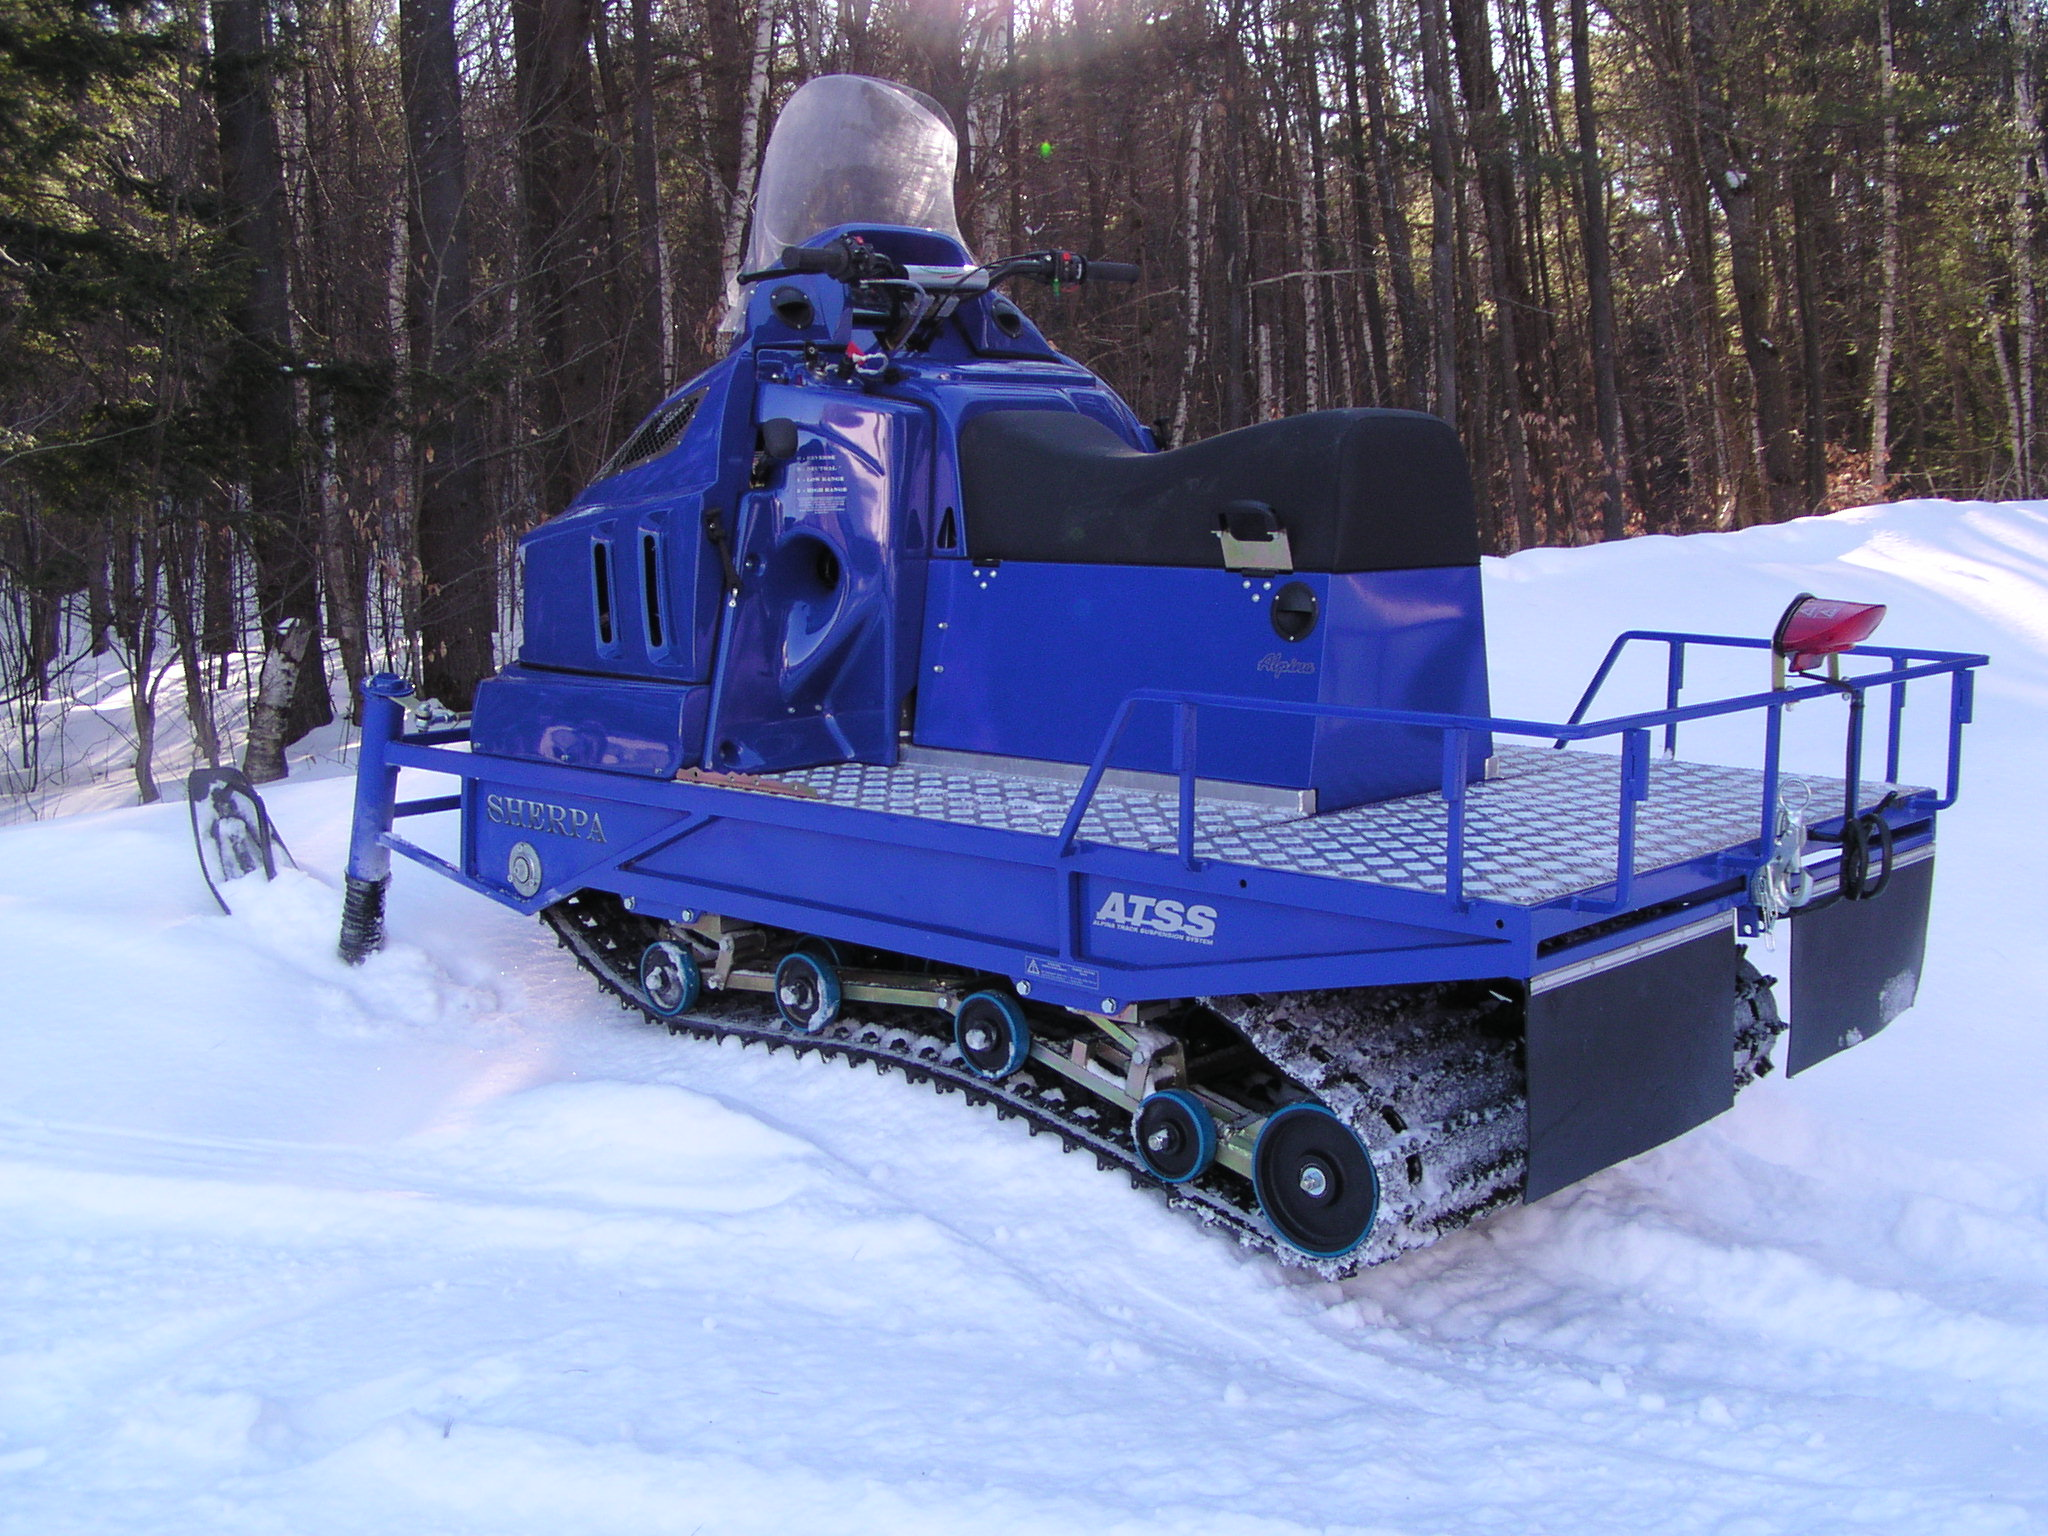 Description Dual-track snowmobile.jpg